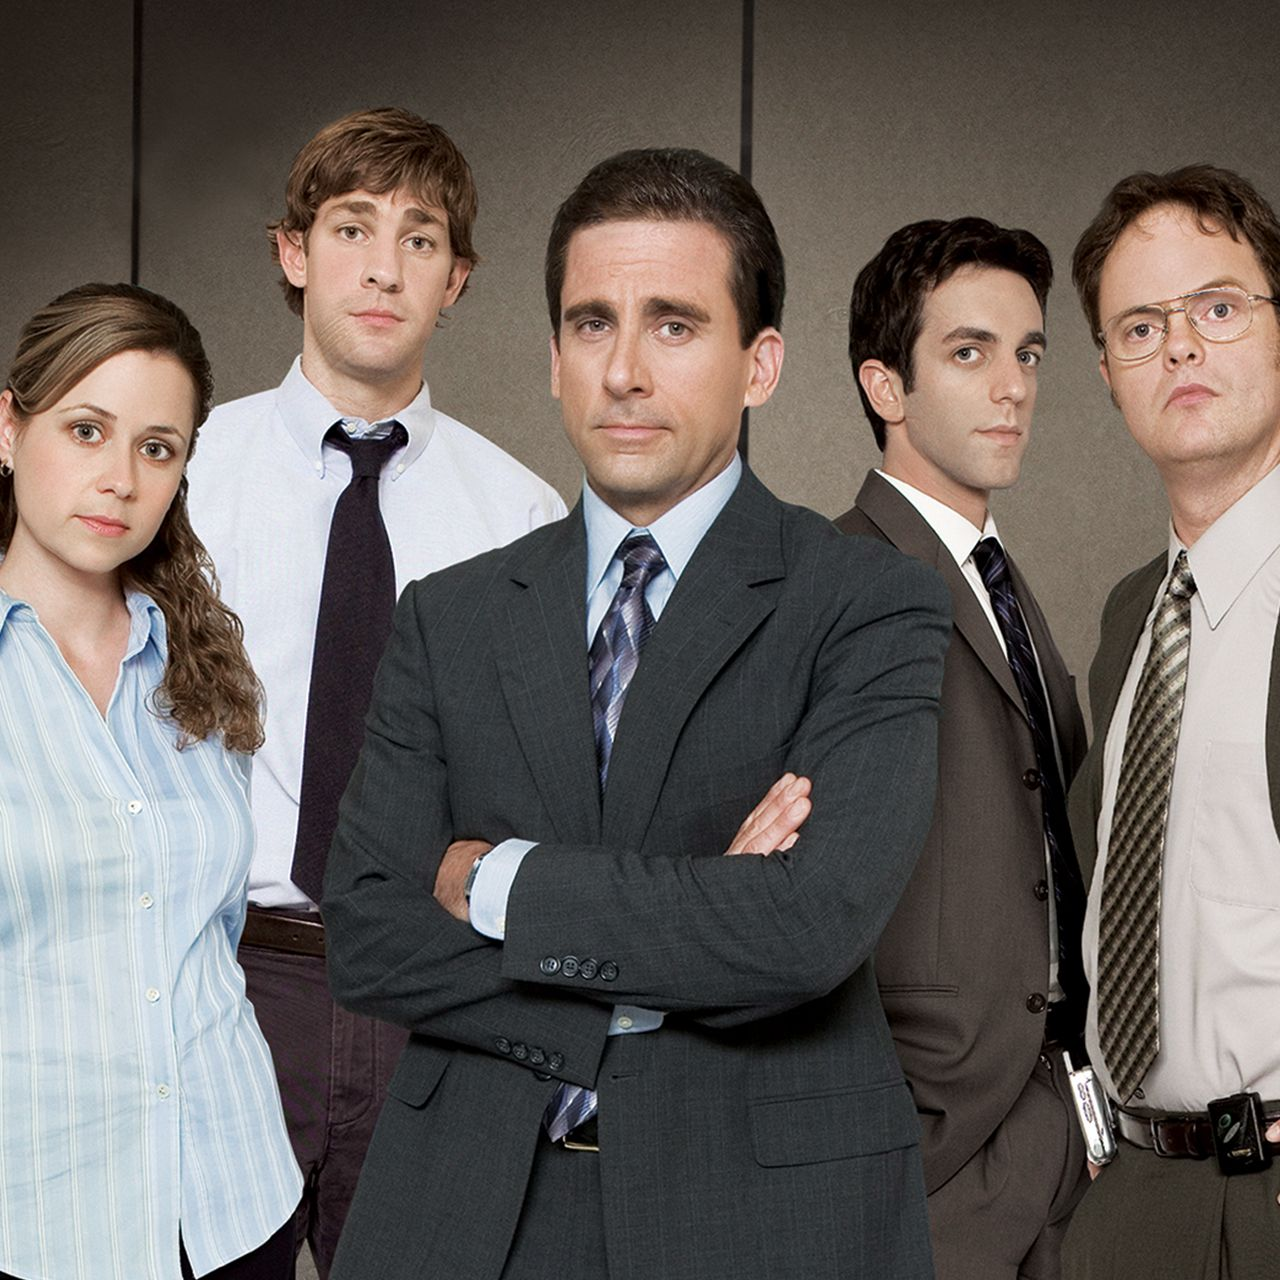 the office pics. the office pics